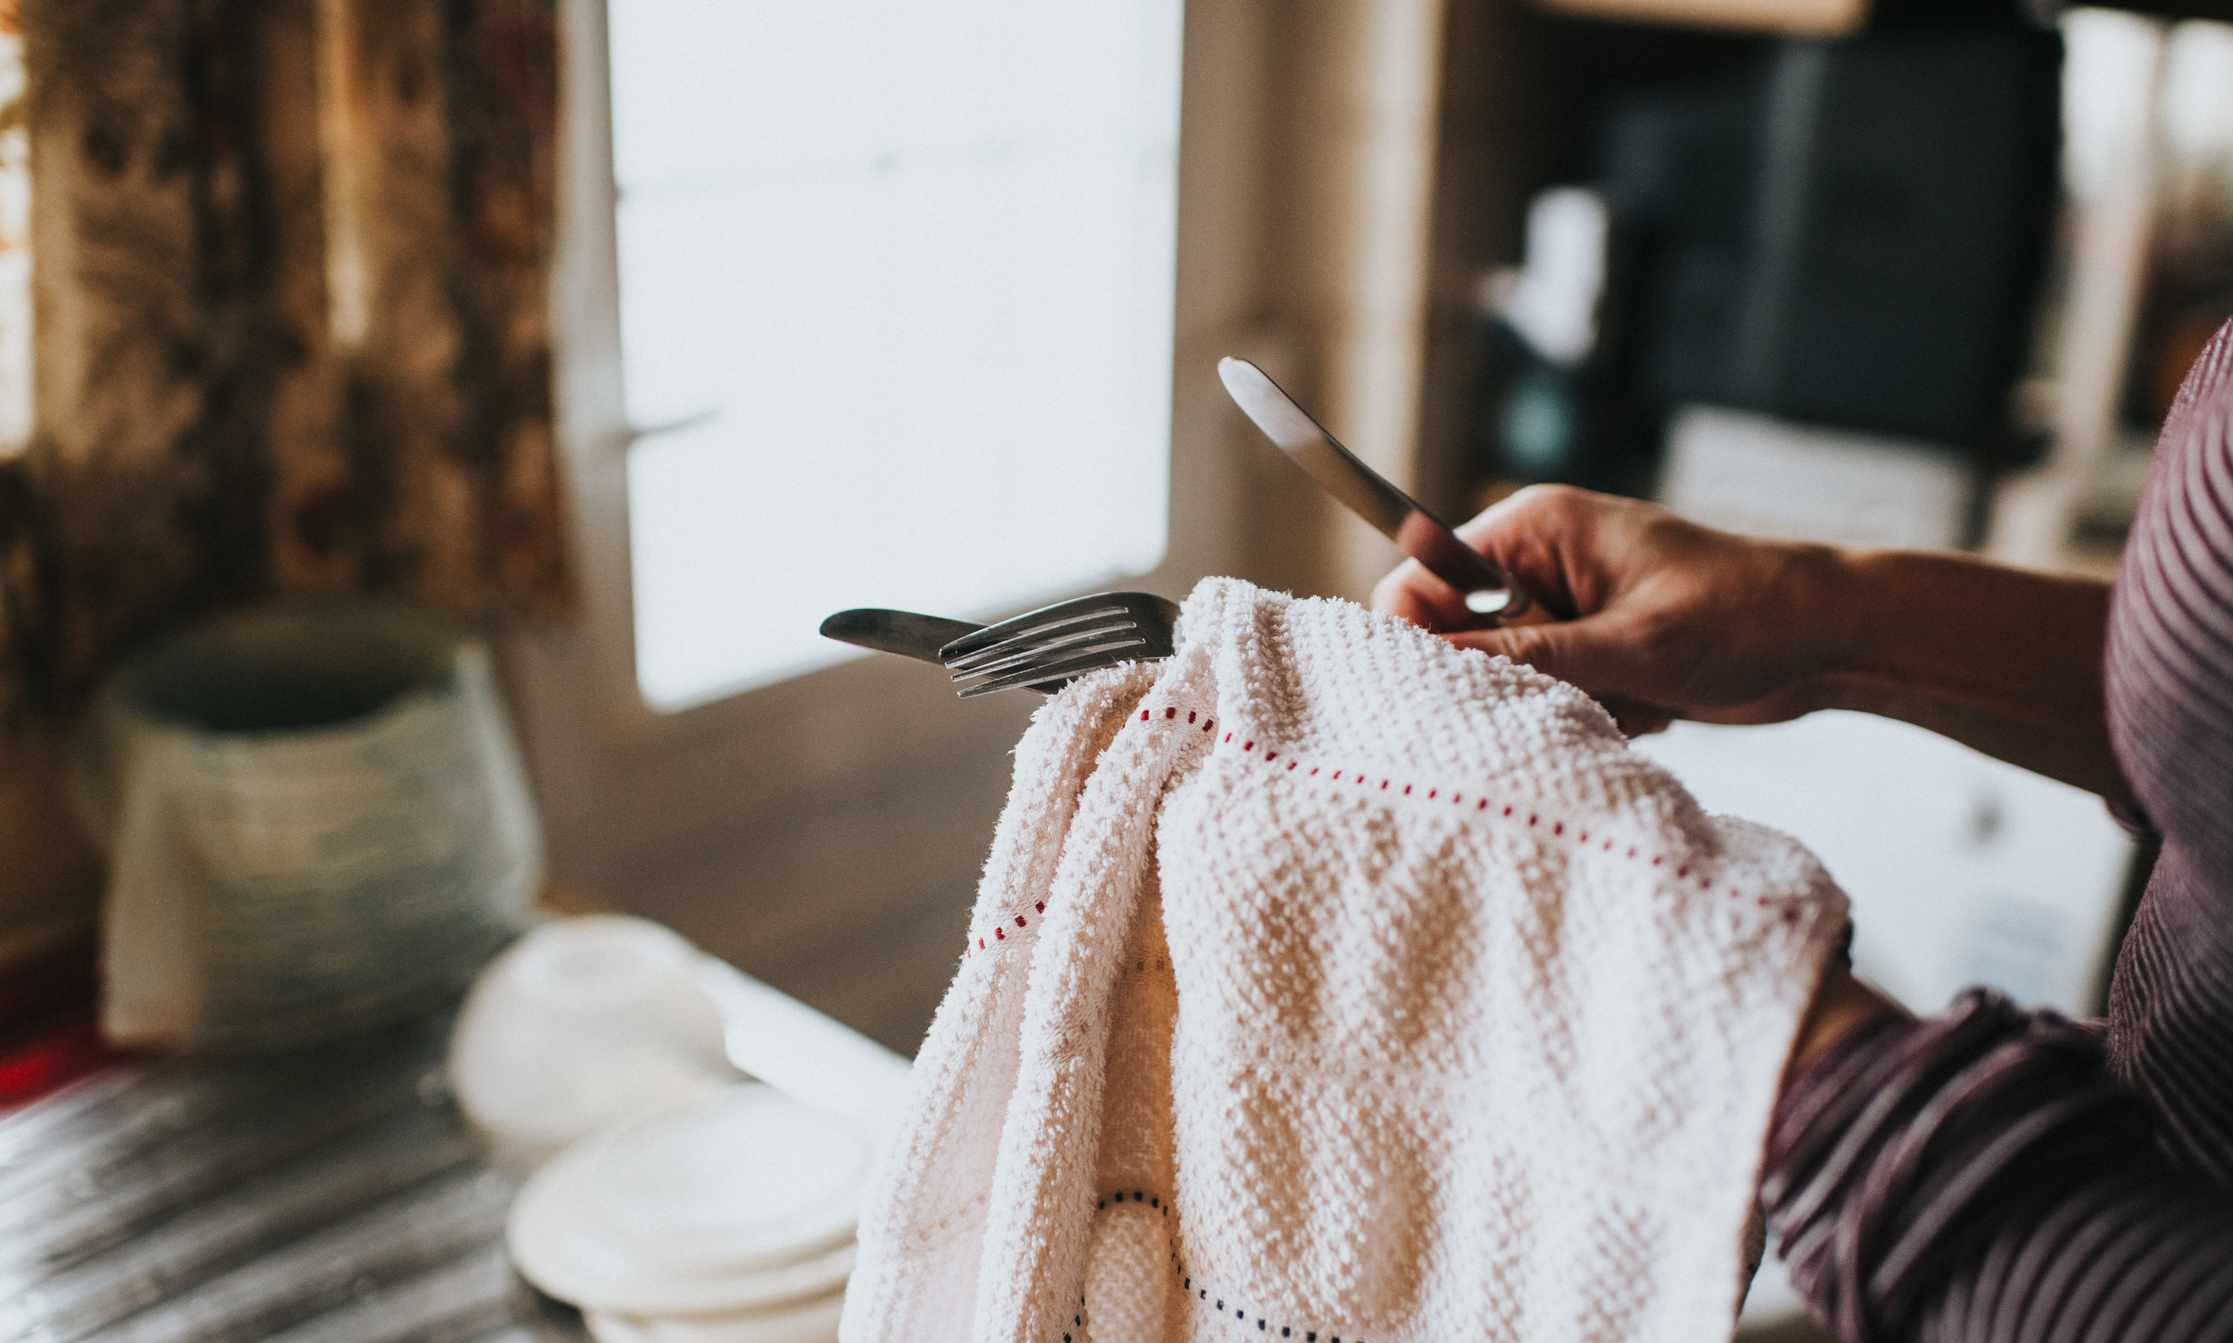 person drying off silverware with towel